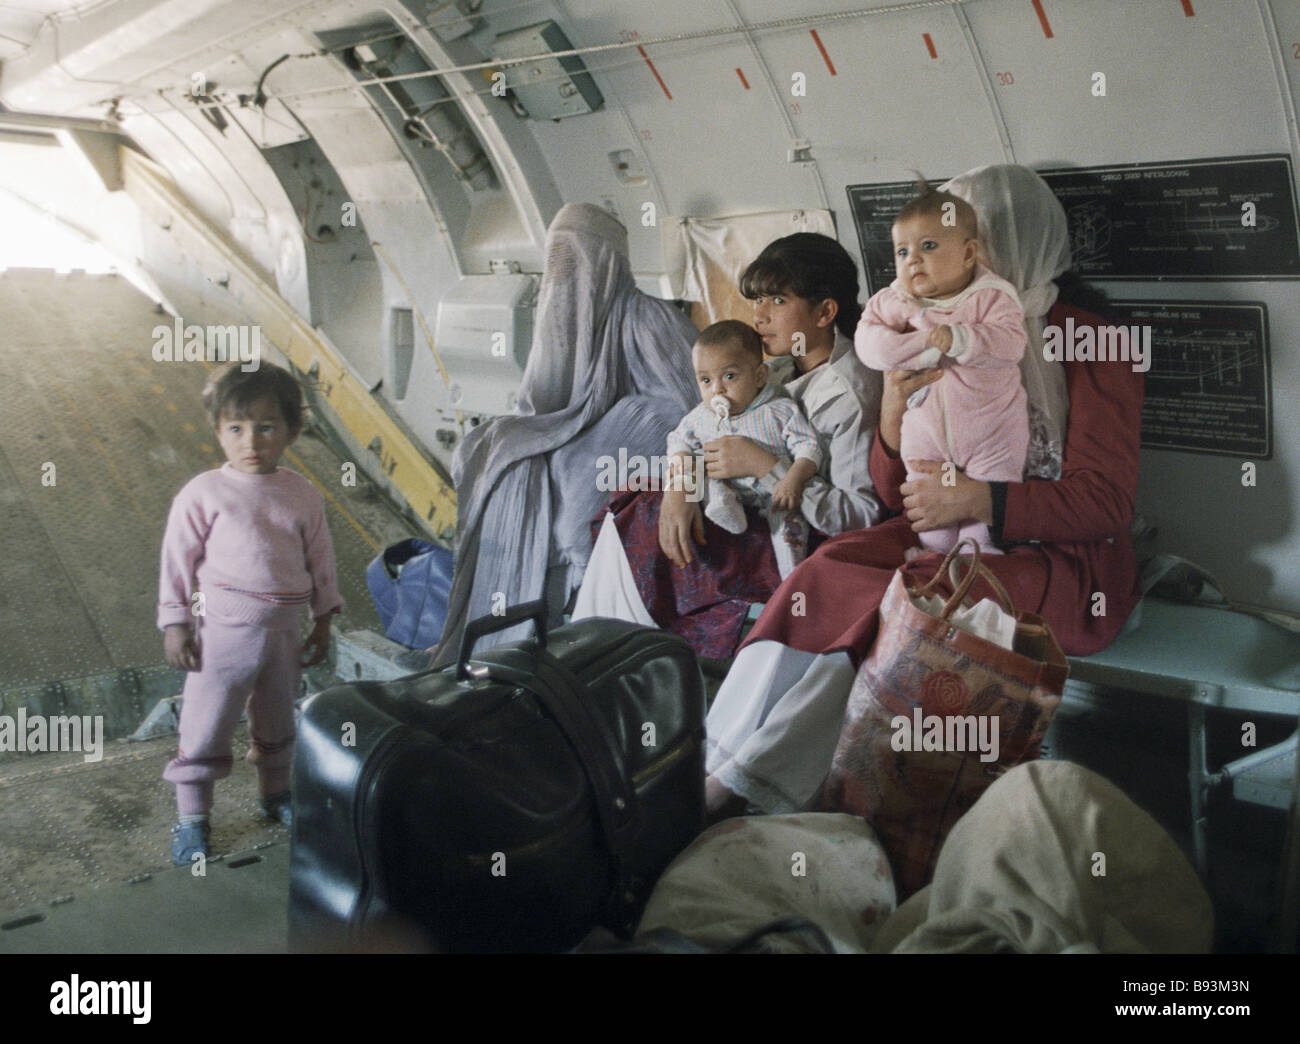 Afghan women with children in a military transport aircraft - Stock Image